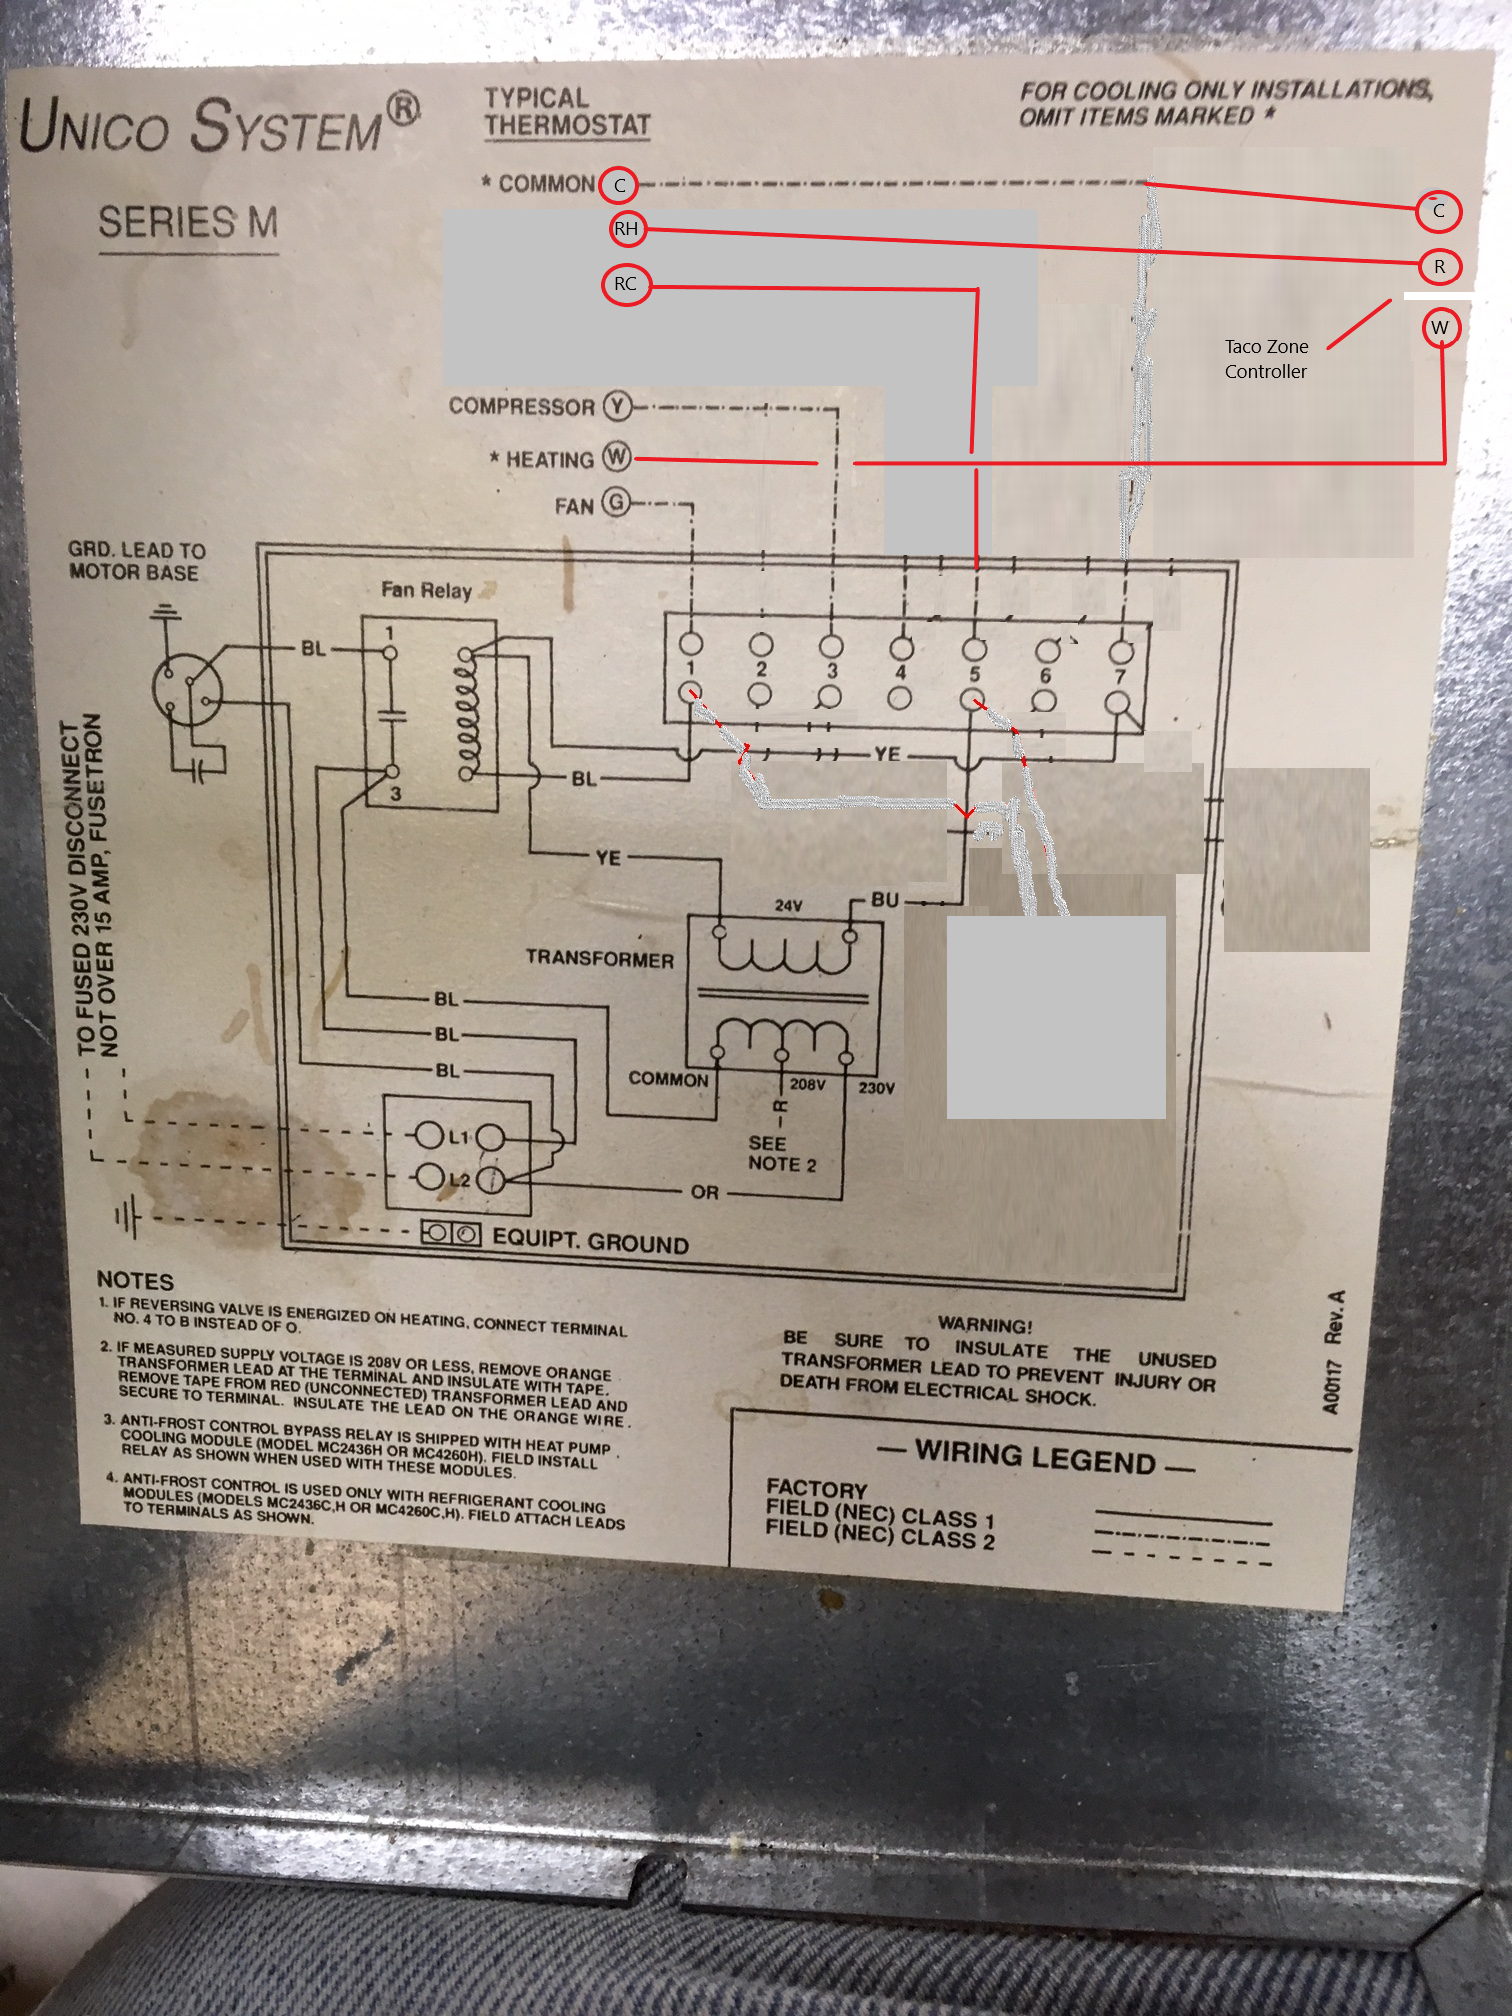 Air Handler Aquastat For Auto Mode Is Blowing The Transformer - HVAC on battery diagrams, lighting diagrams, honda motorcycle repair diagrams, transformer diagrams, sincgars radio configurations diagrams, electrical diagrams, switch diagrams, engine diagrams, series and parallel circuits diagrams, electronic circuit diagrams, friendship bracelet diagrams, pinout diagrams, smart car diagrams, motor diagrams, internet of things diagrams, hvac diagrams, troubleshooting diagrams, led circuit diagrams, gmc fuse box diagrams,